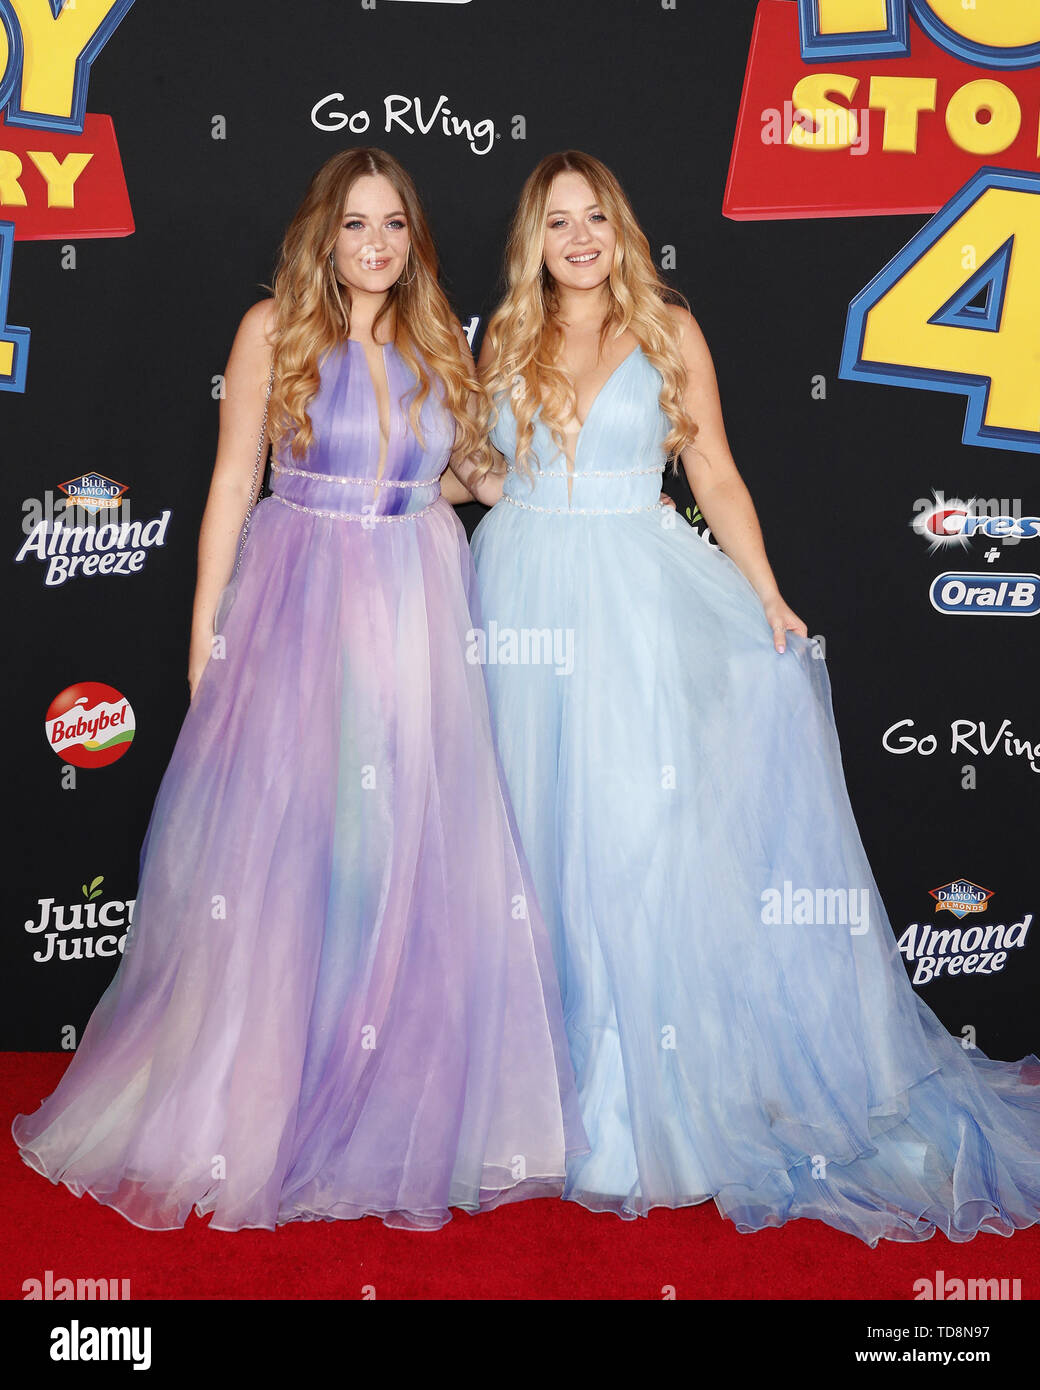 June 11, 2019 - Los Angeles, CA, USA - LOS ANGELES - JUN 11:  Lucy Connell, Lydia Connell at the ''Toy Story 4'' Premiere at the El Capitan Theater on June 11, 2019 in Los Angeles, CA (Credit Image: © Kay Blake/ZUMA Wire) - Stock Image